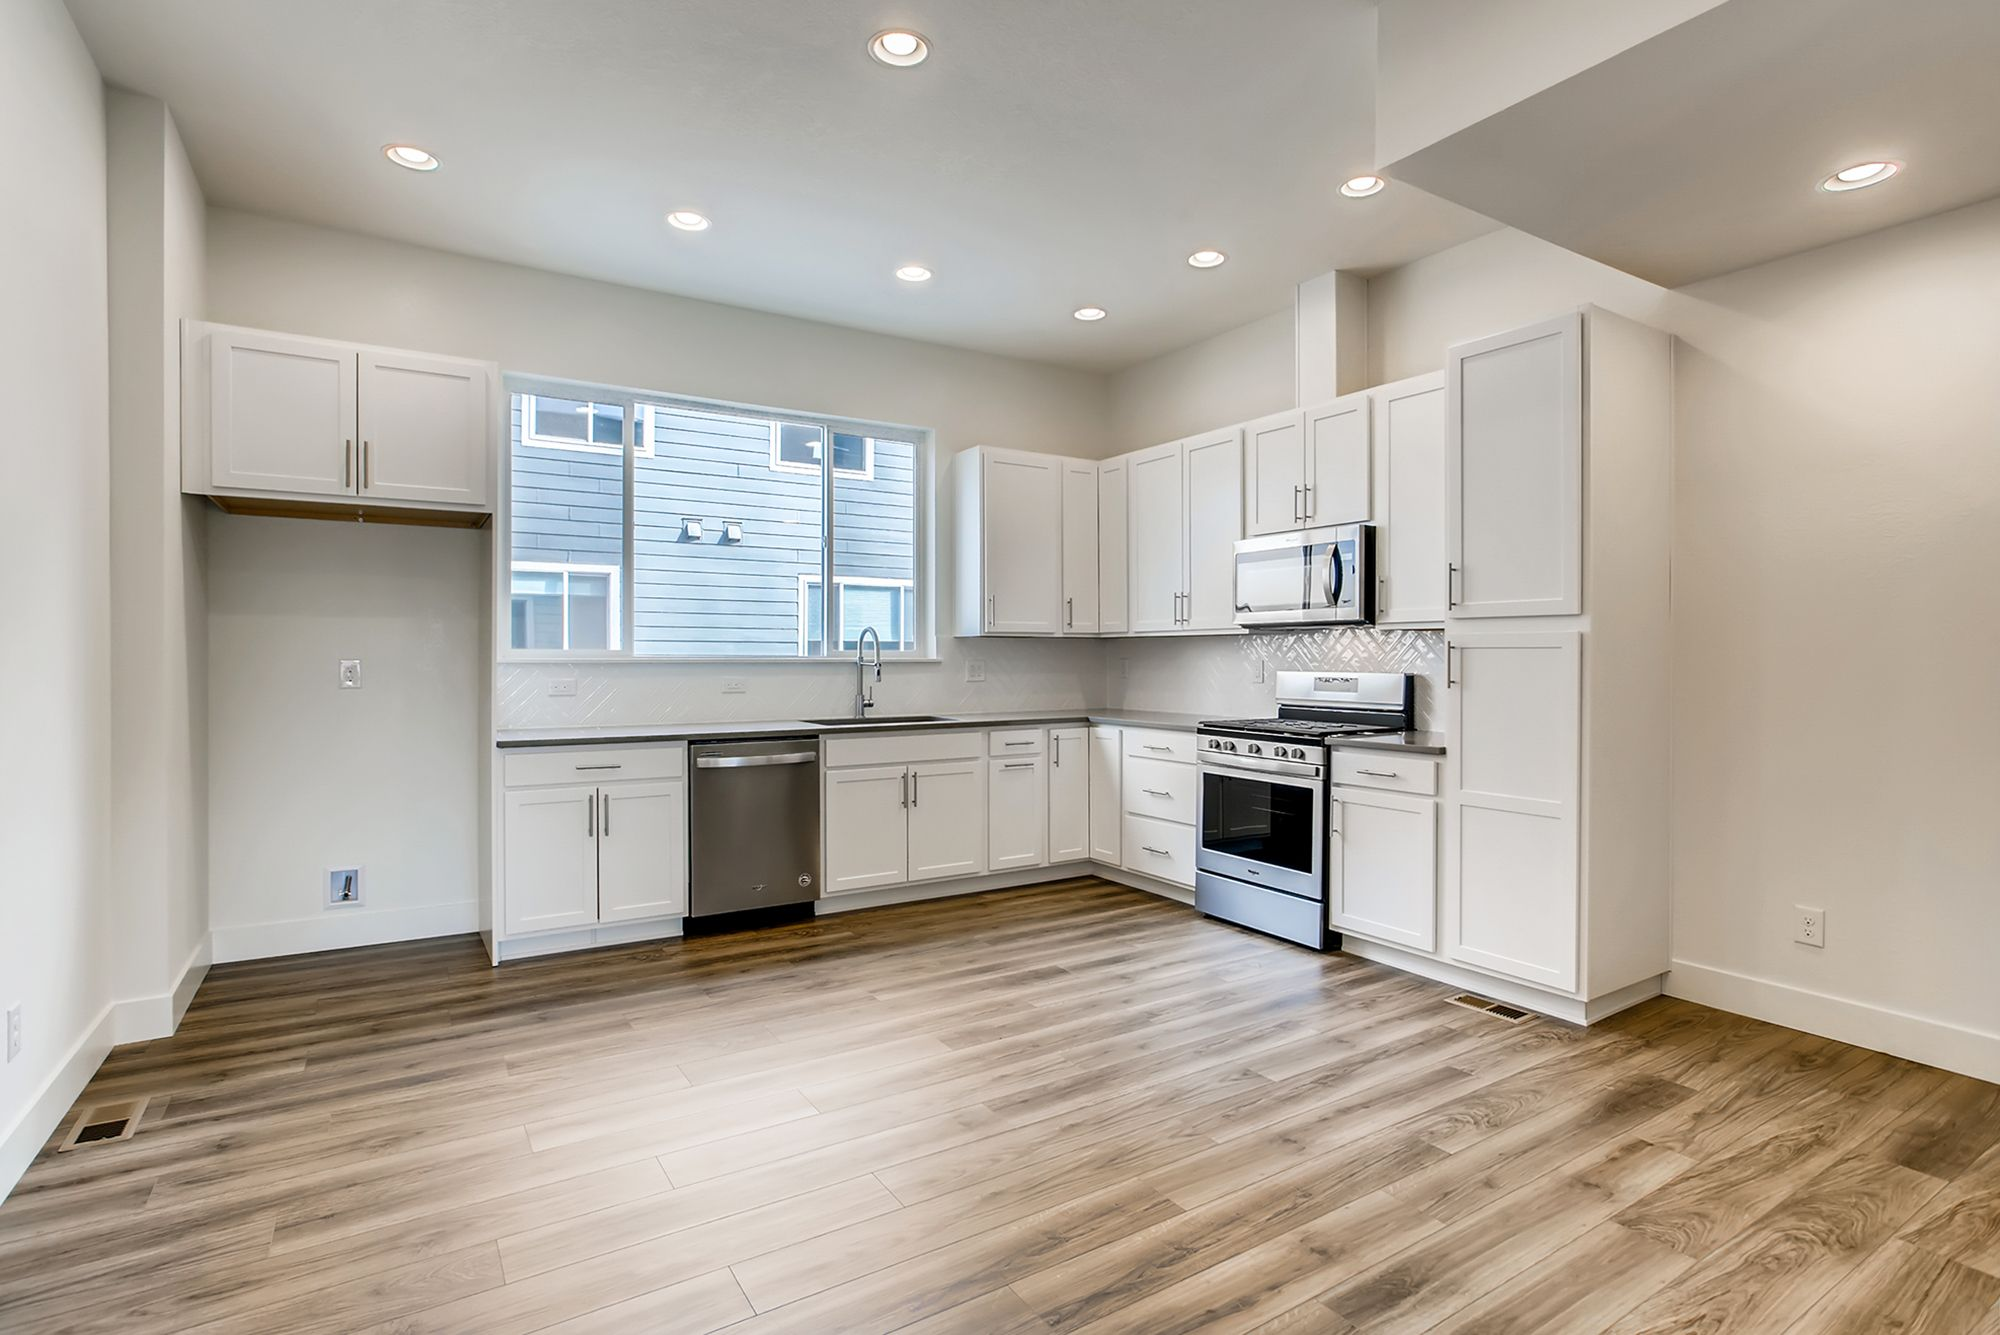 Kitchen featured in the Garland By Thrive Home Builders in Denver, CO